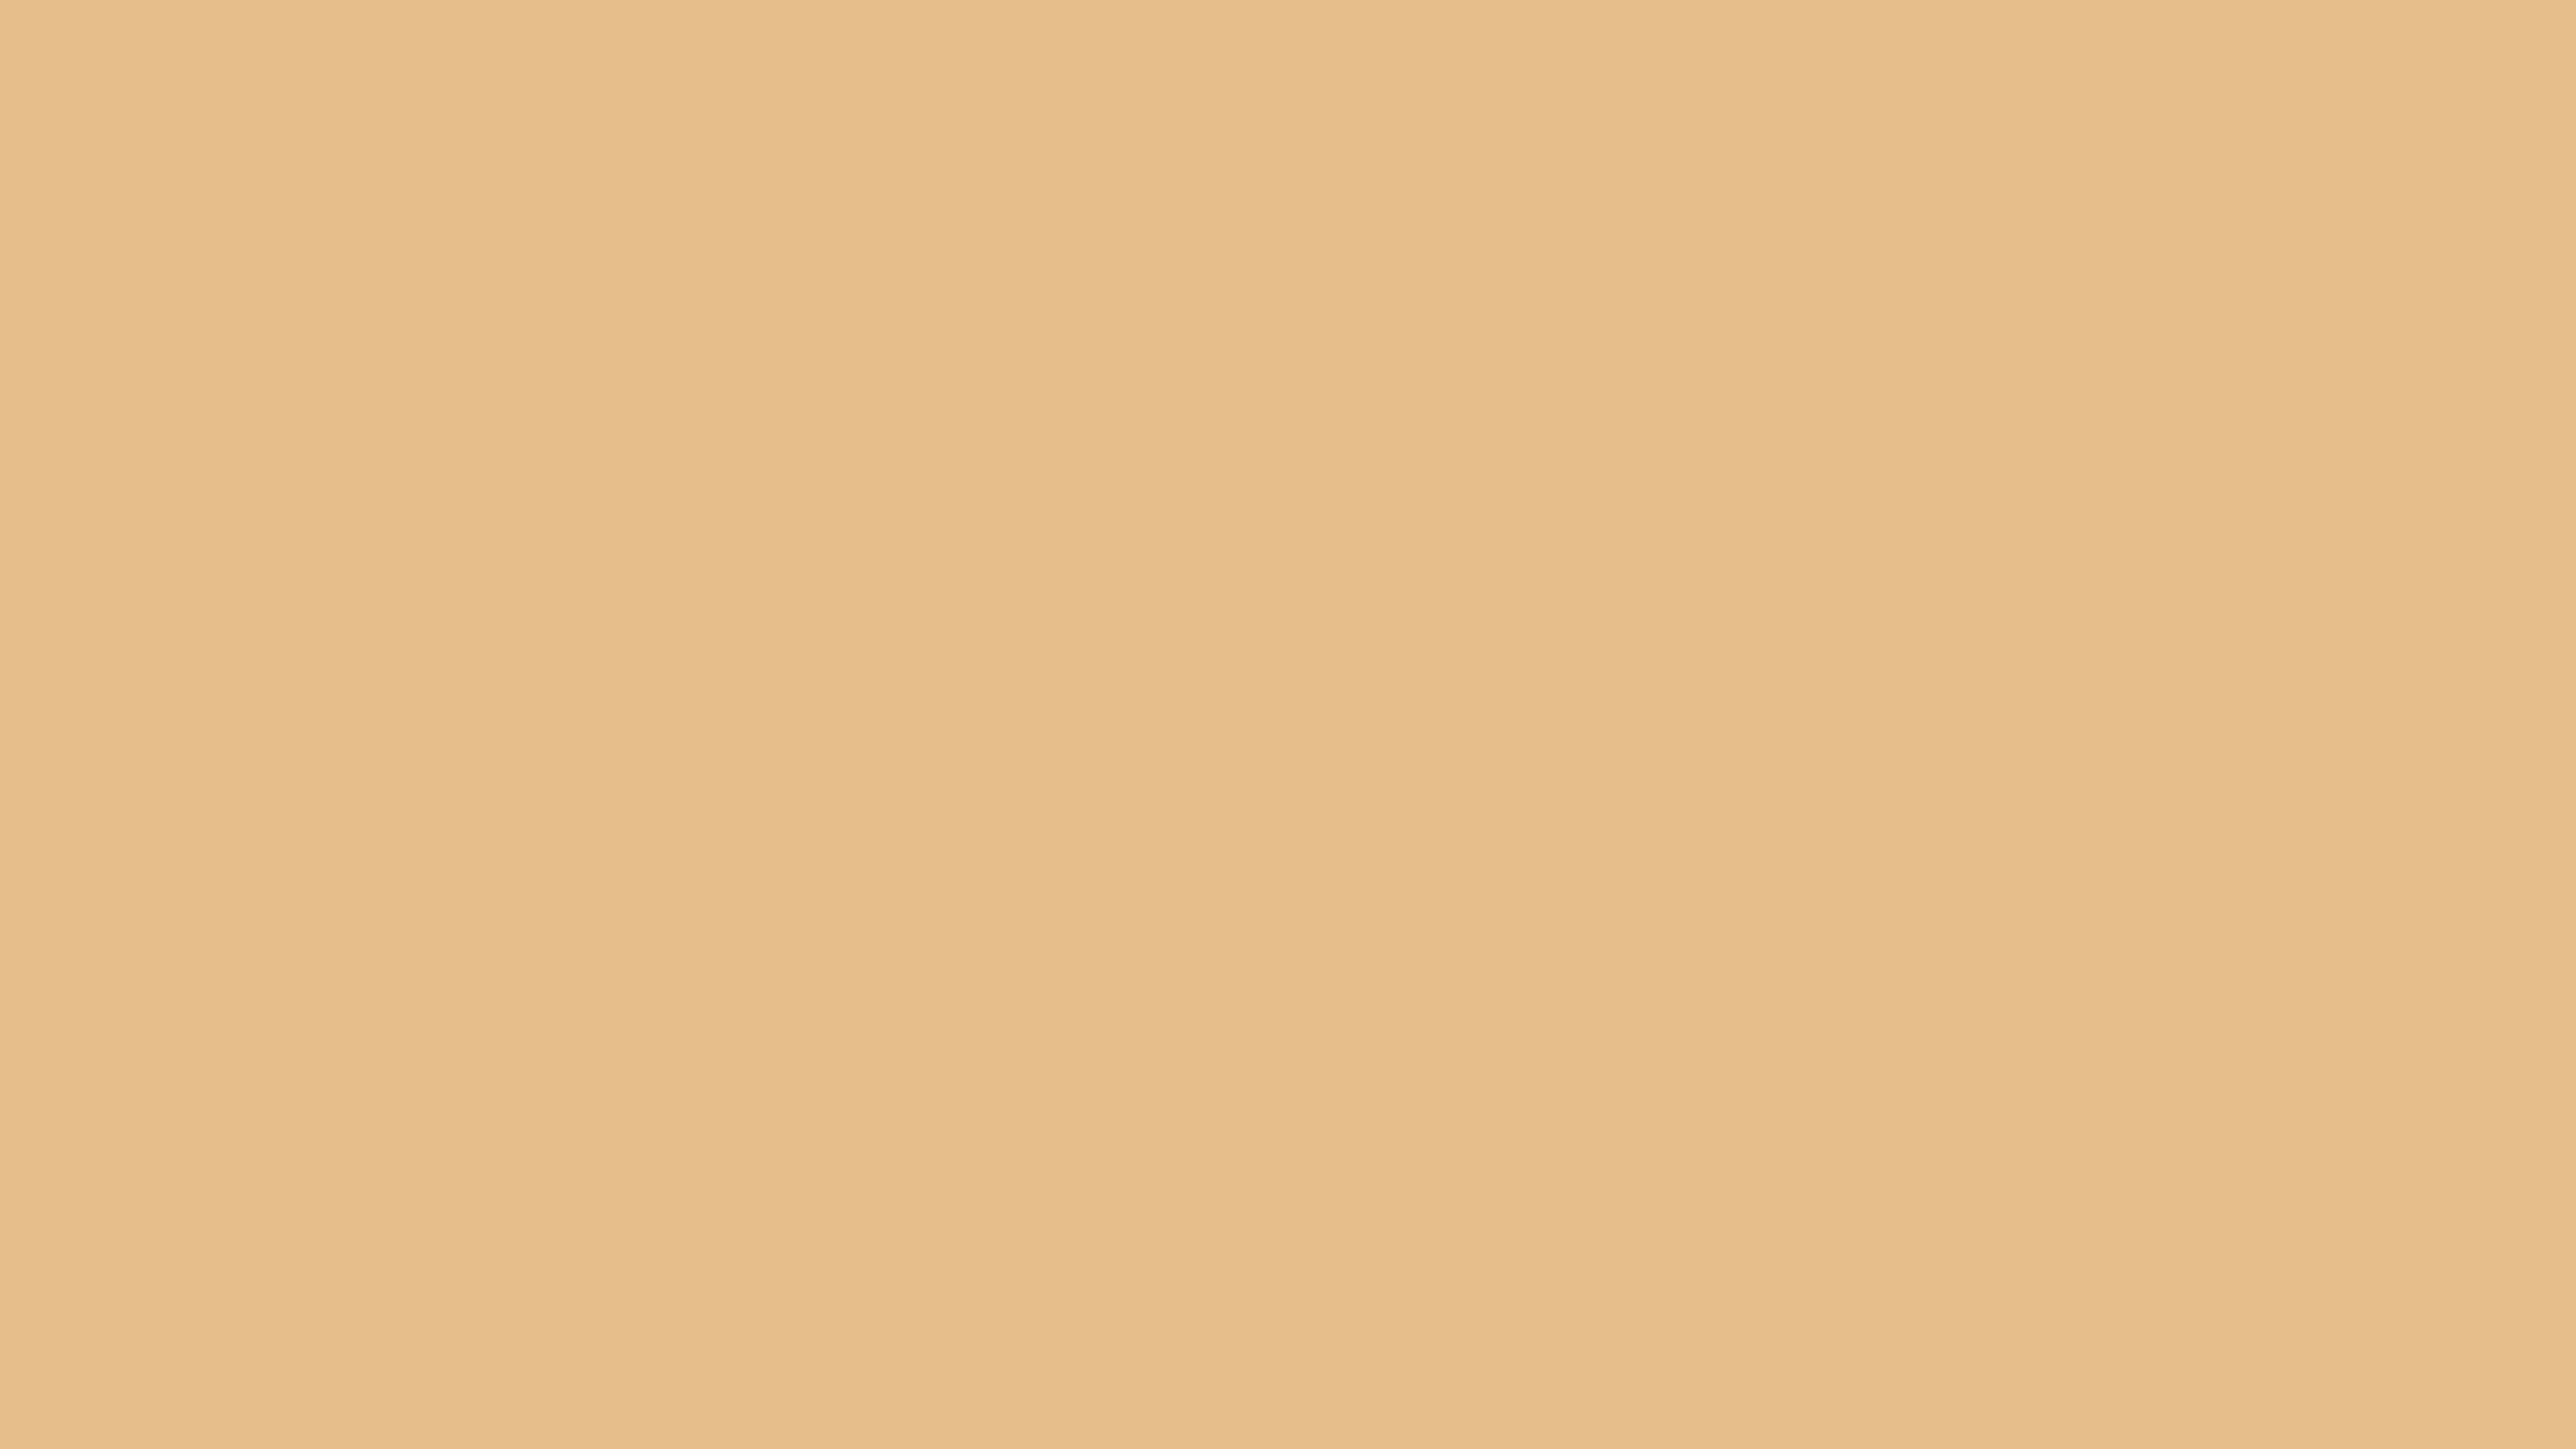 3840x2160 Pale Gold Solid Color Background